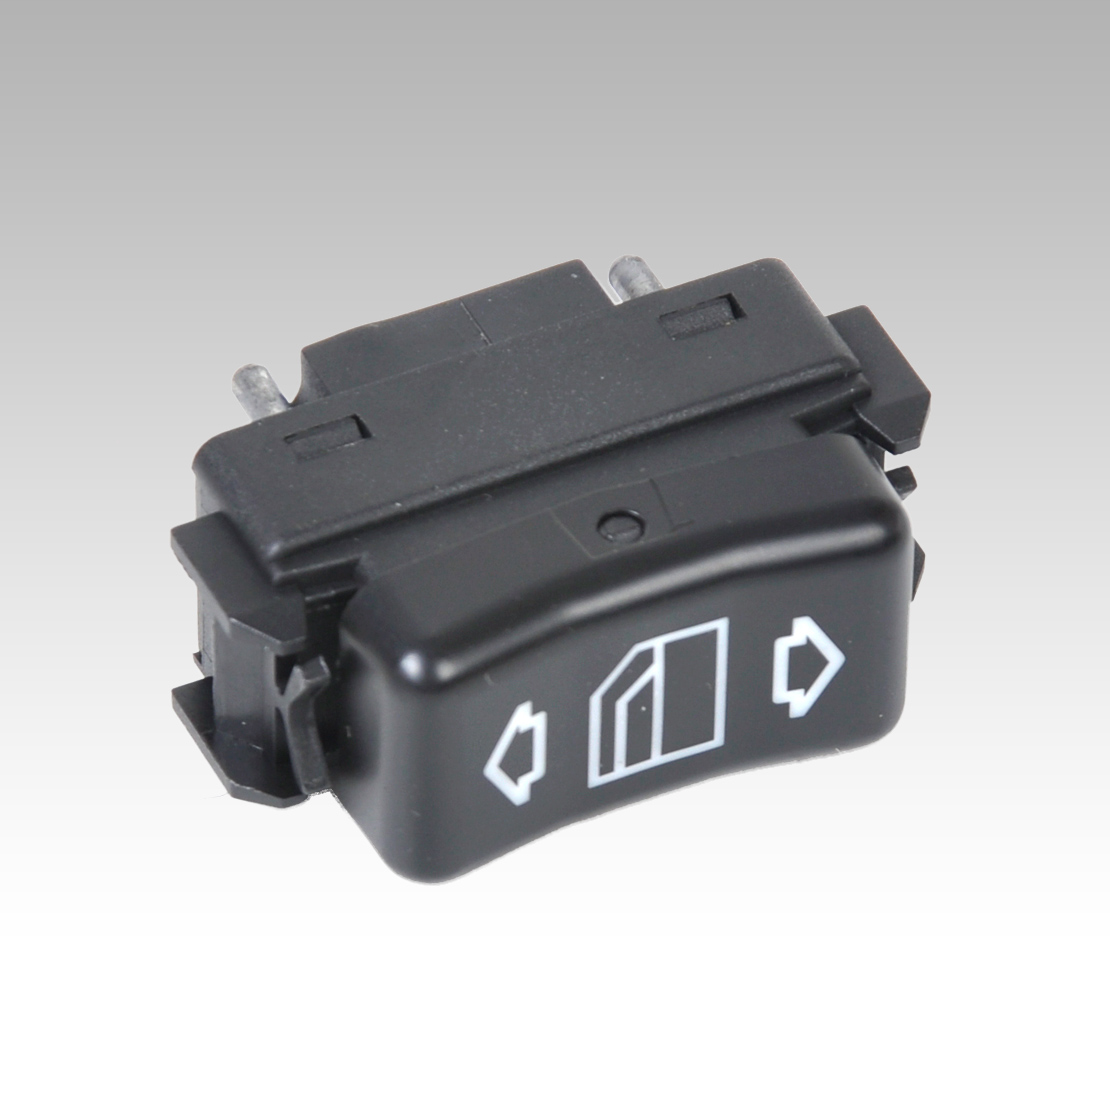 DWCX Right Electric Master Control Power Window Switch 1248204510 For <font><b>Mercedes</b></font> Benz E Class S Class W124 W126 W201 W463 image